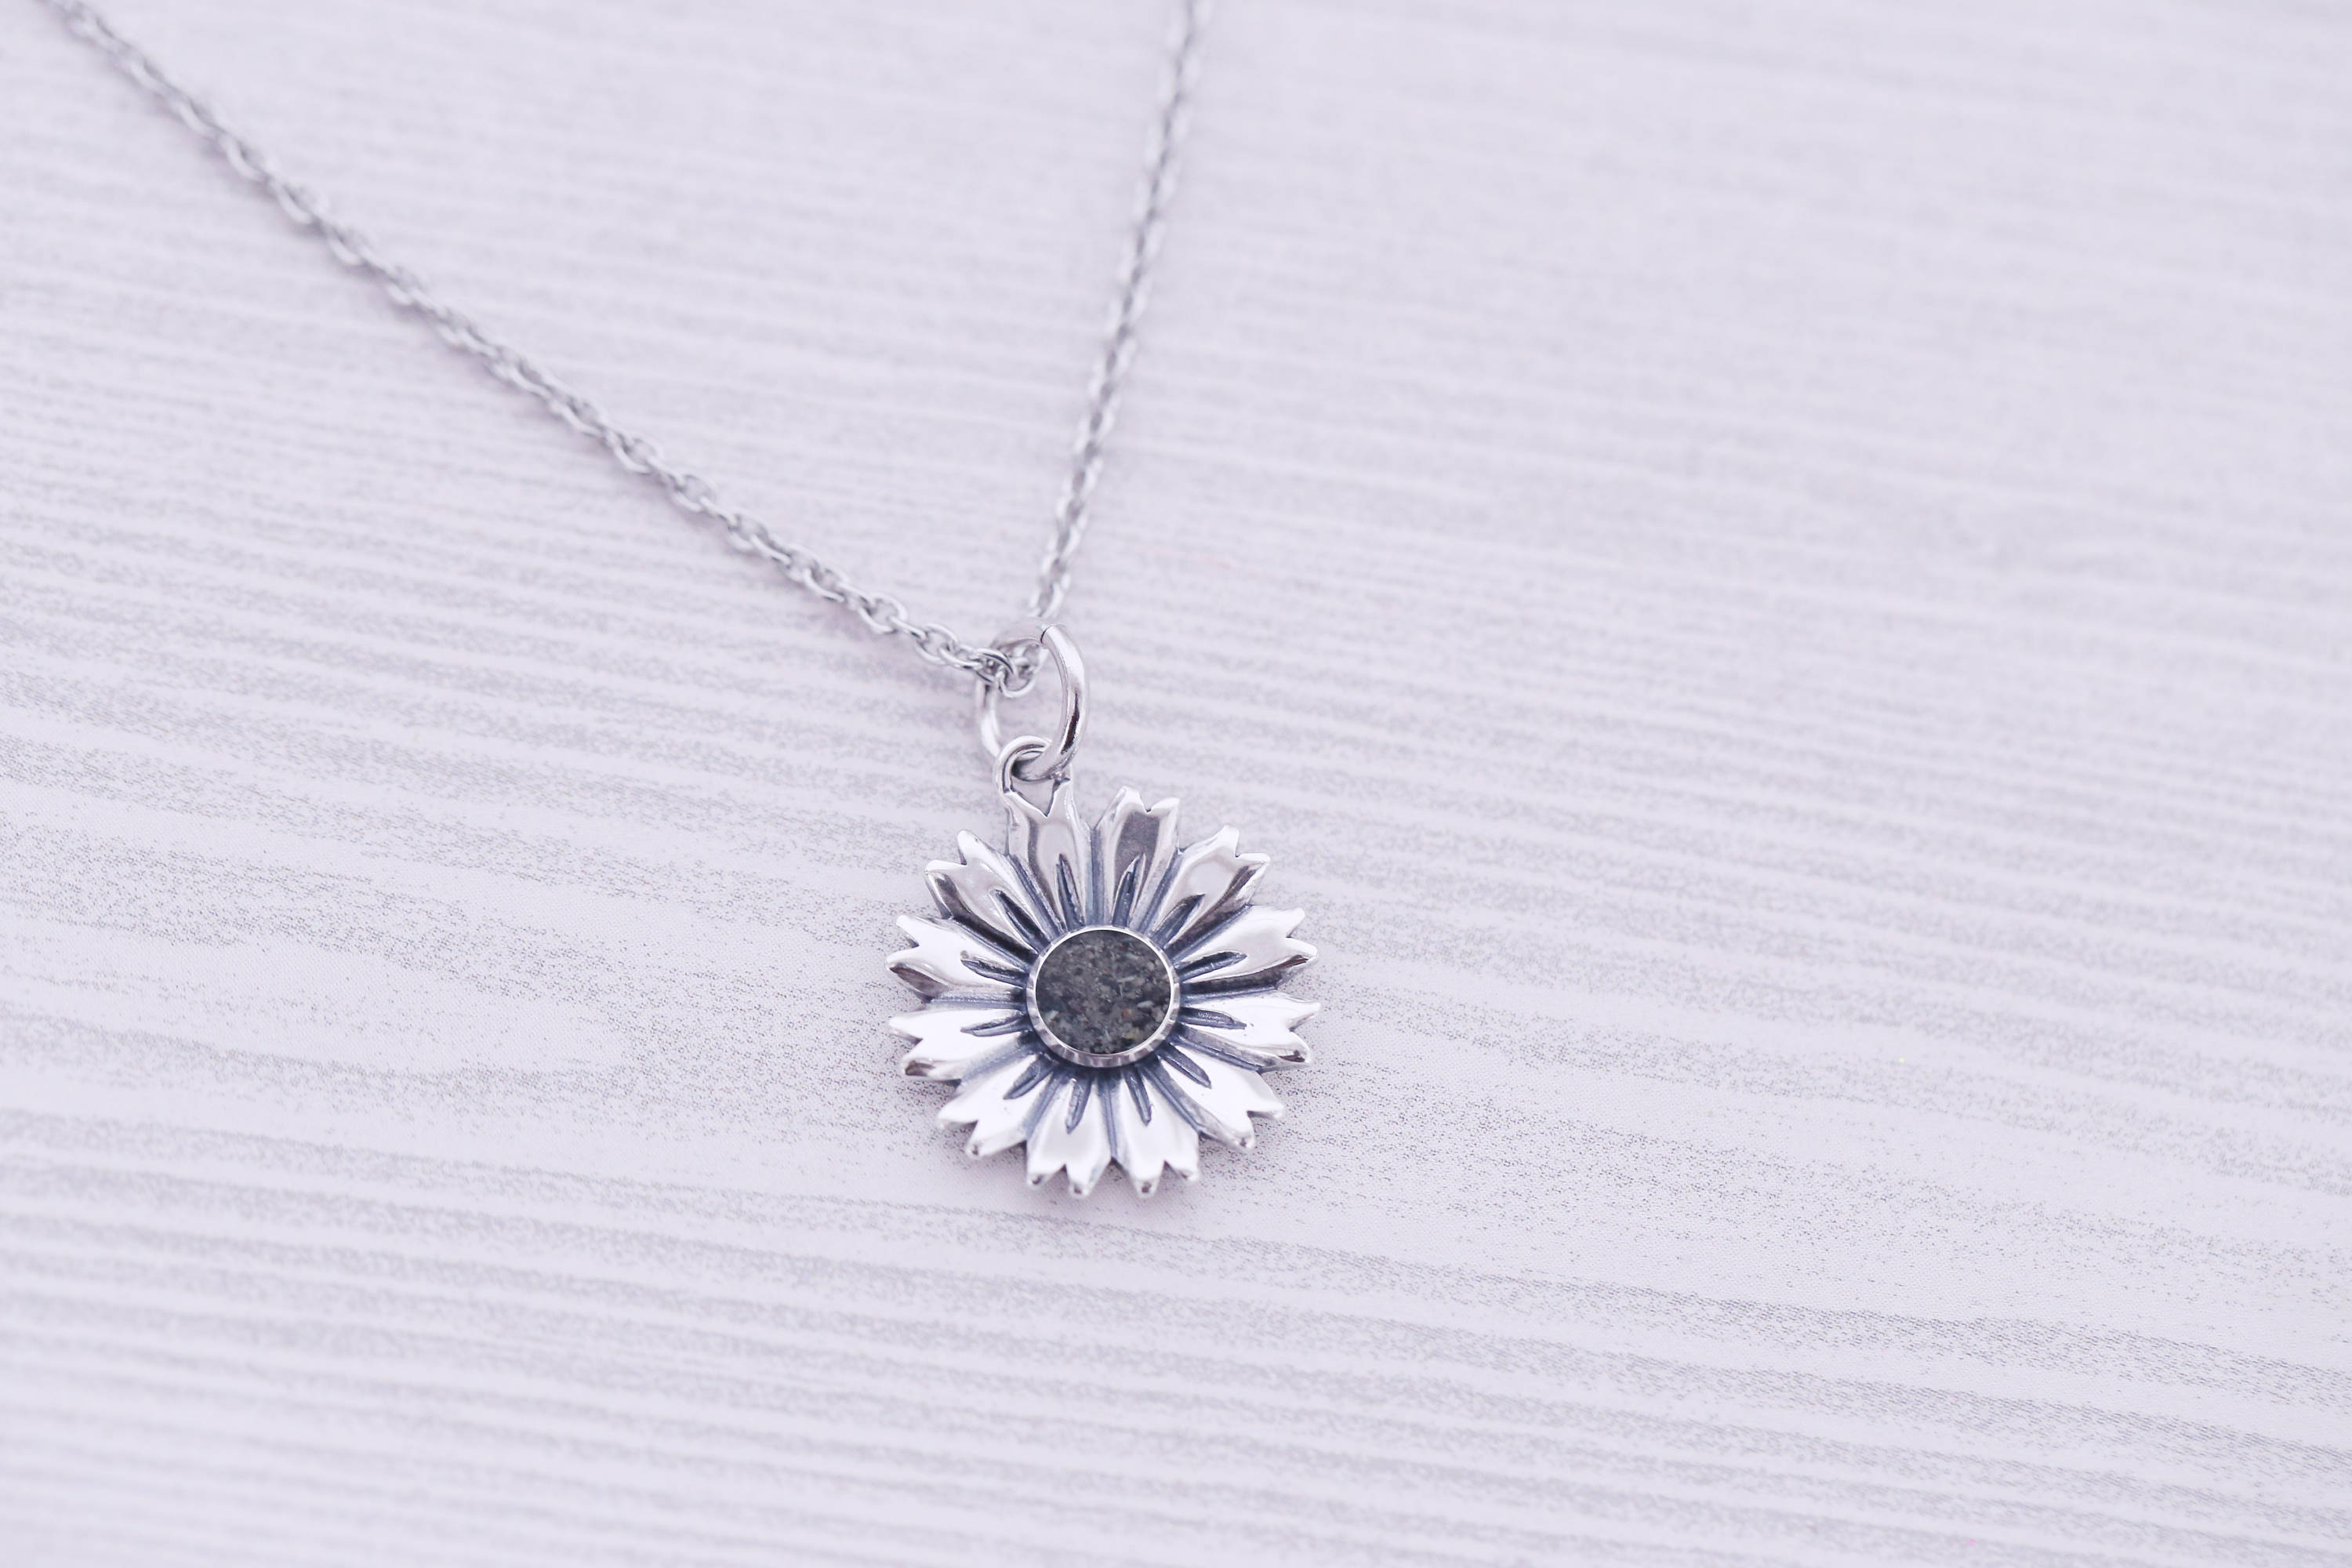 Cremation Pendant - Sterling Memorial Pendant for Ashes - Cremation Jewelry - Sunflower - Urn Necklace - Pet Memorial - Ash Necklace